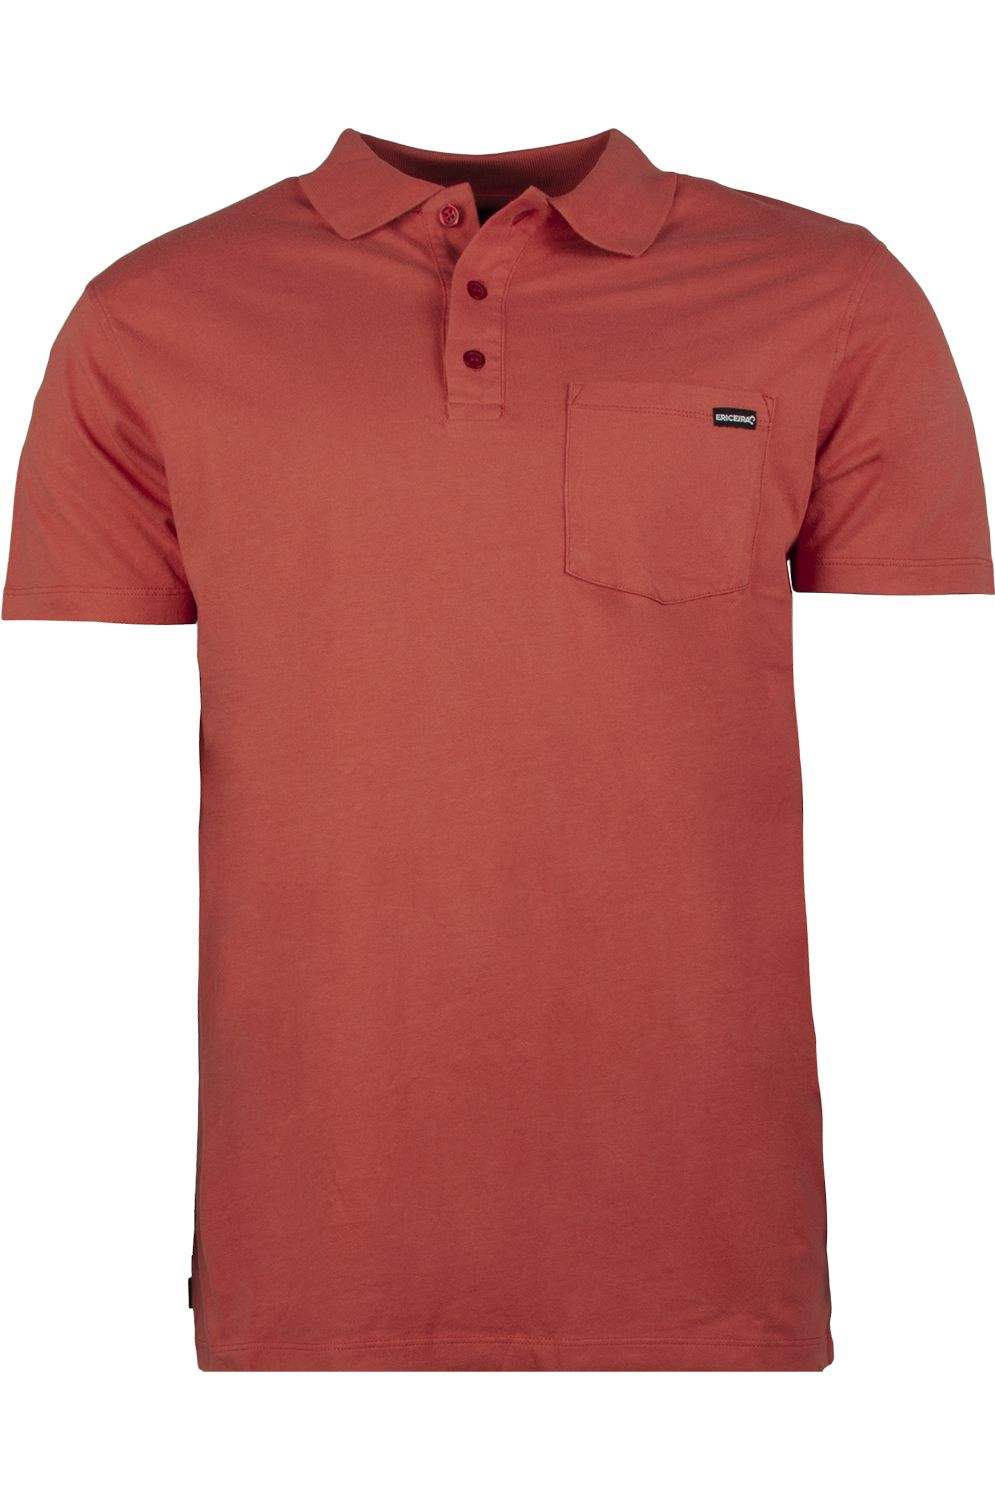 Polo Ericeira Surf Skate EMBRACE '20 Red Clay